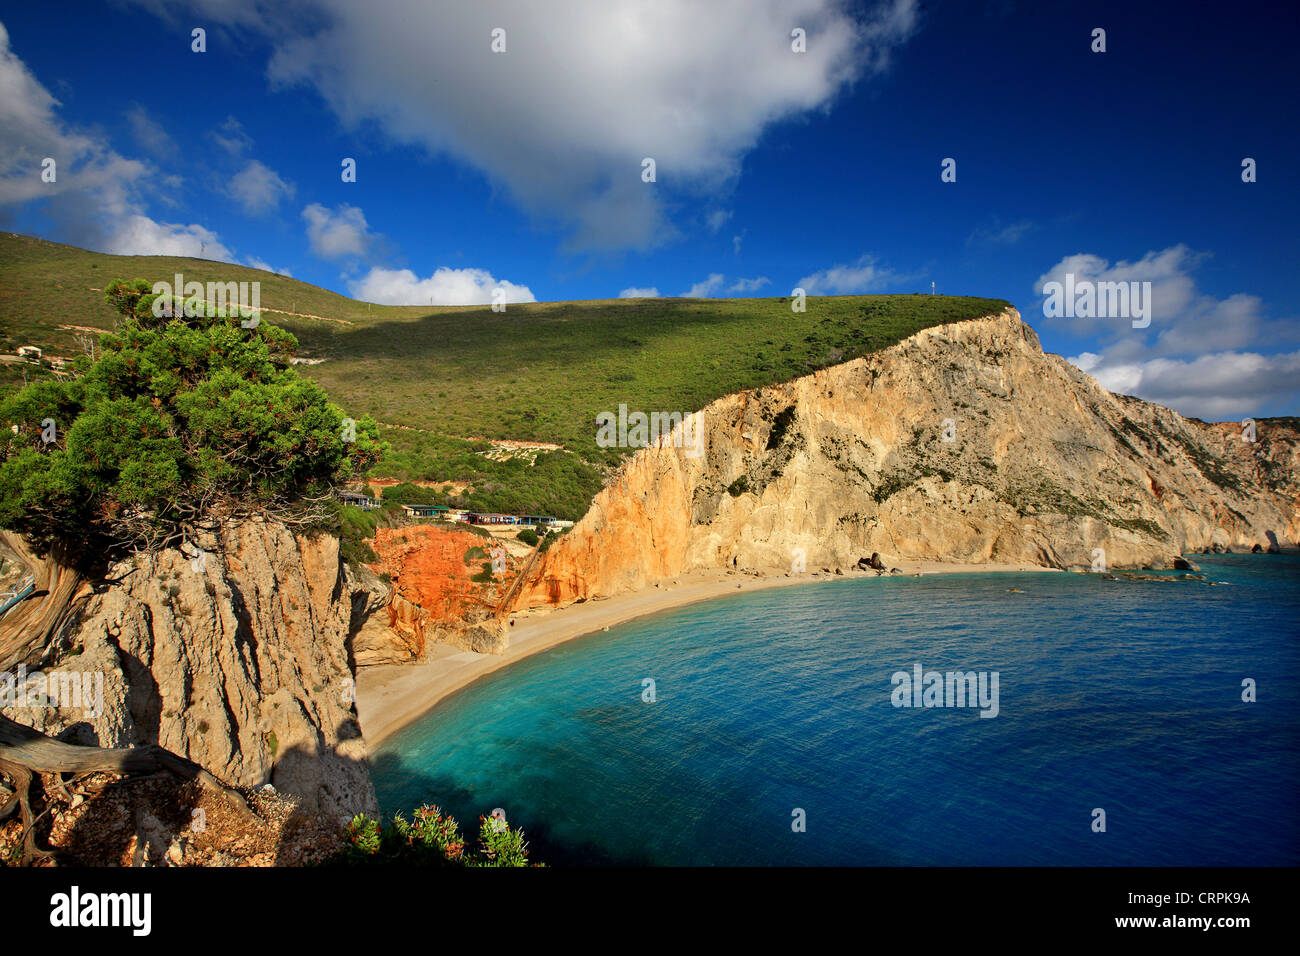 World famous Porto Katsiki beach ('off season'), Lefkada (or 'Lefkas') island, Ionian Sea, Eptanisa - Stock Image